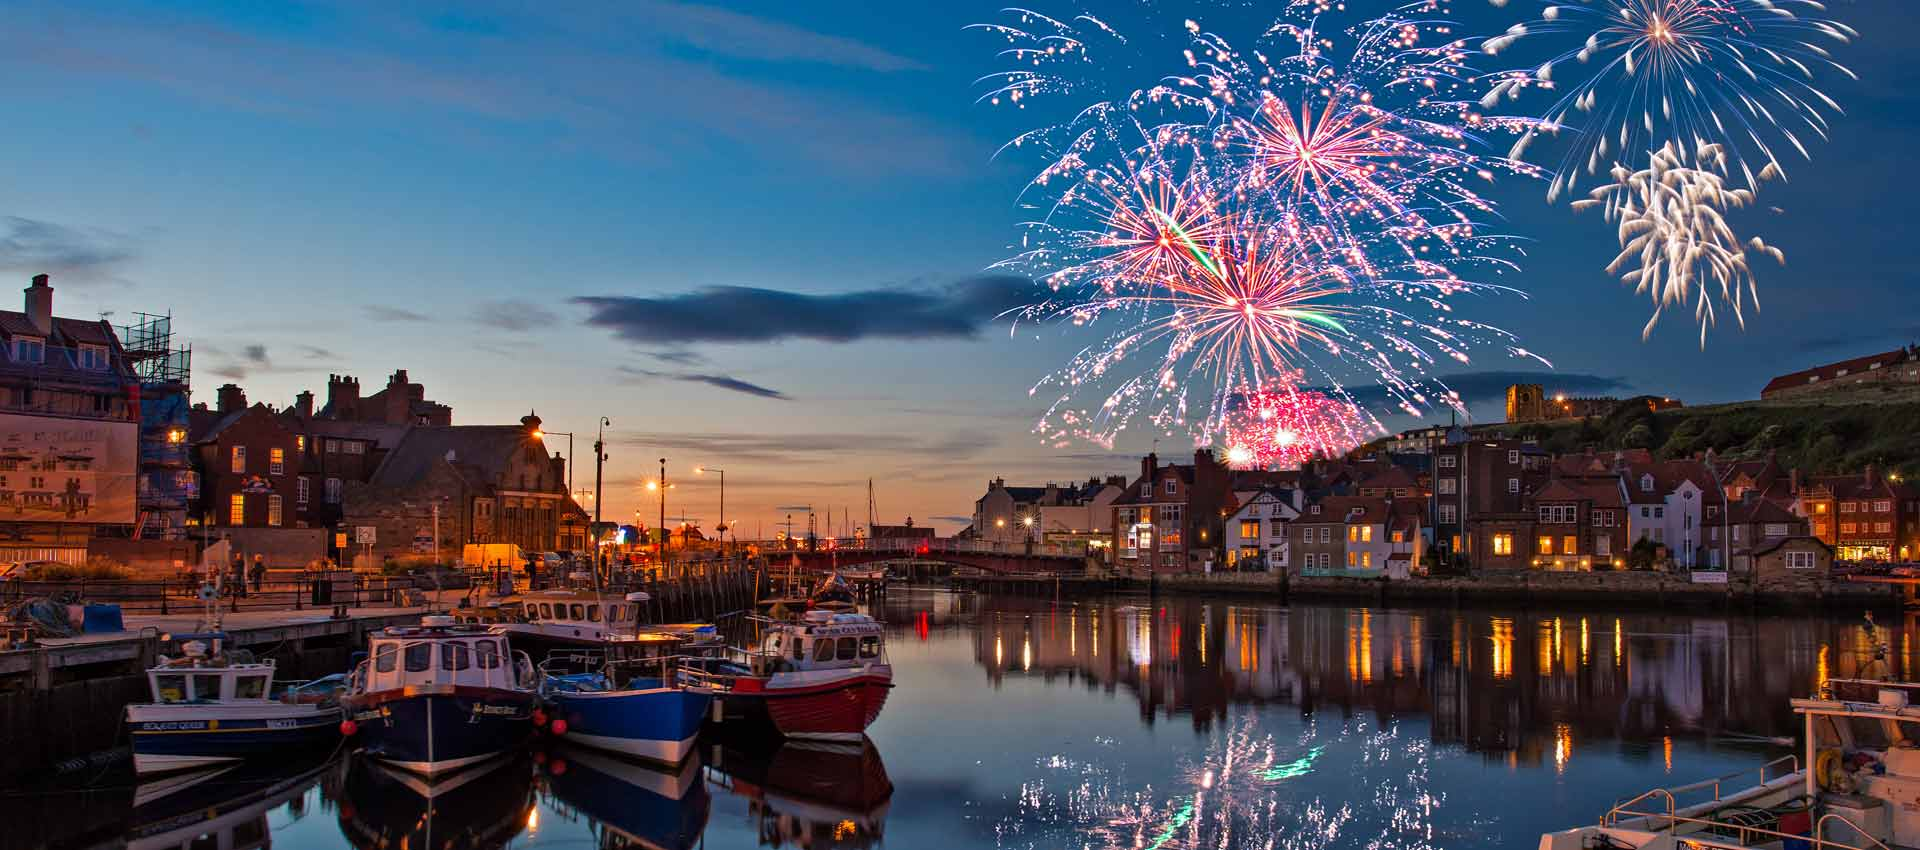 Whitby Fireworks